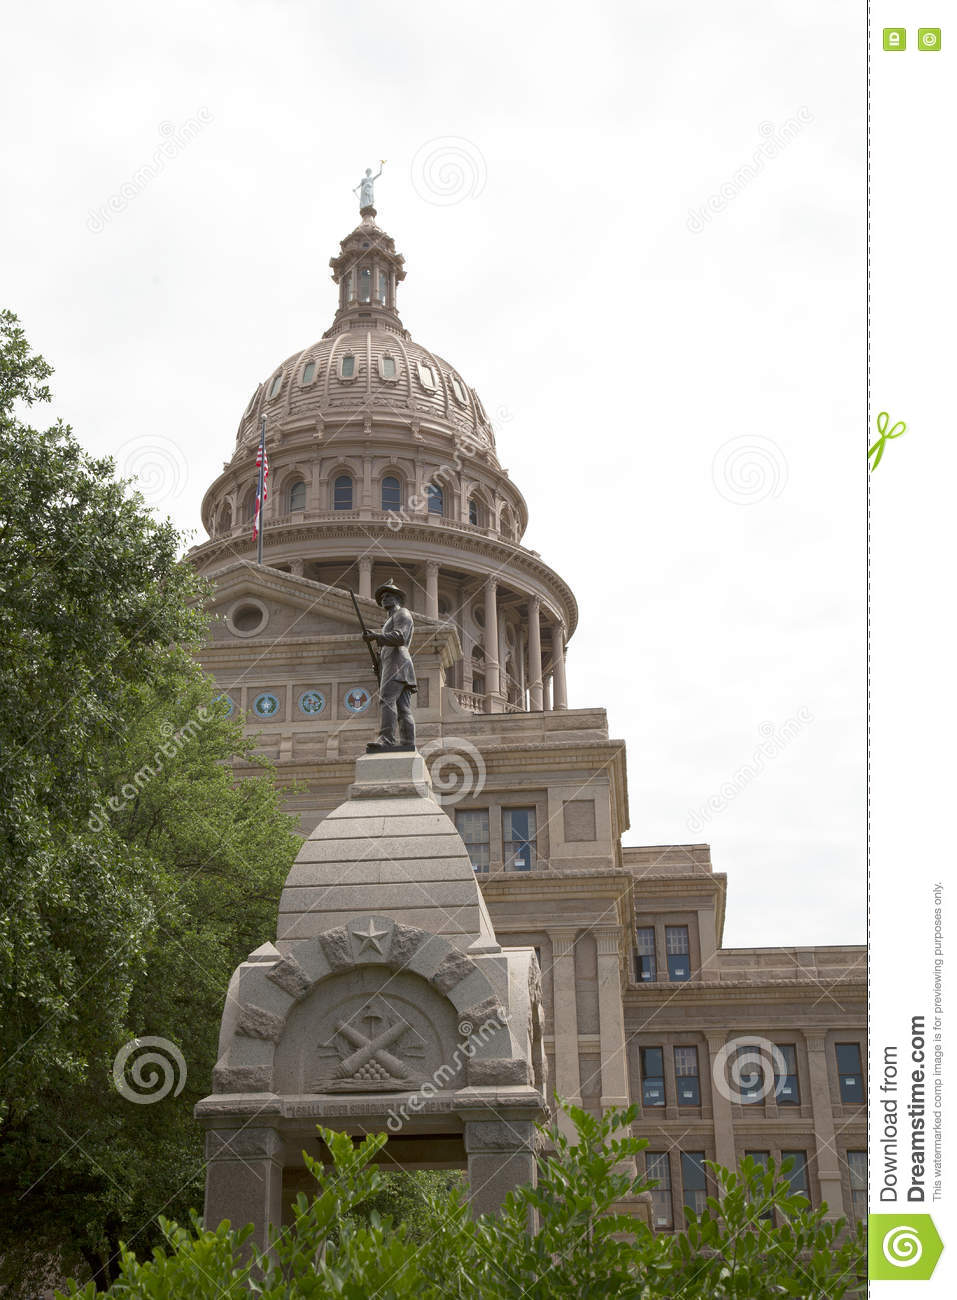 what is the capital city of texas